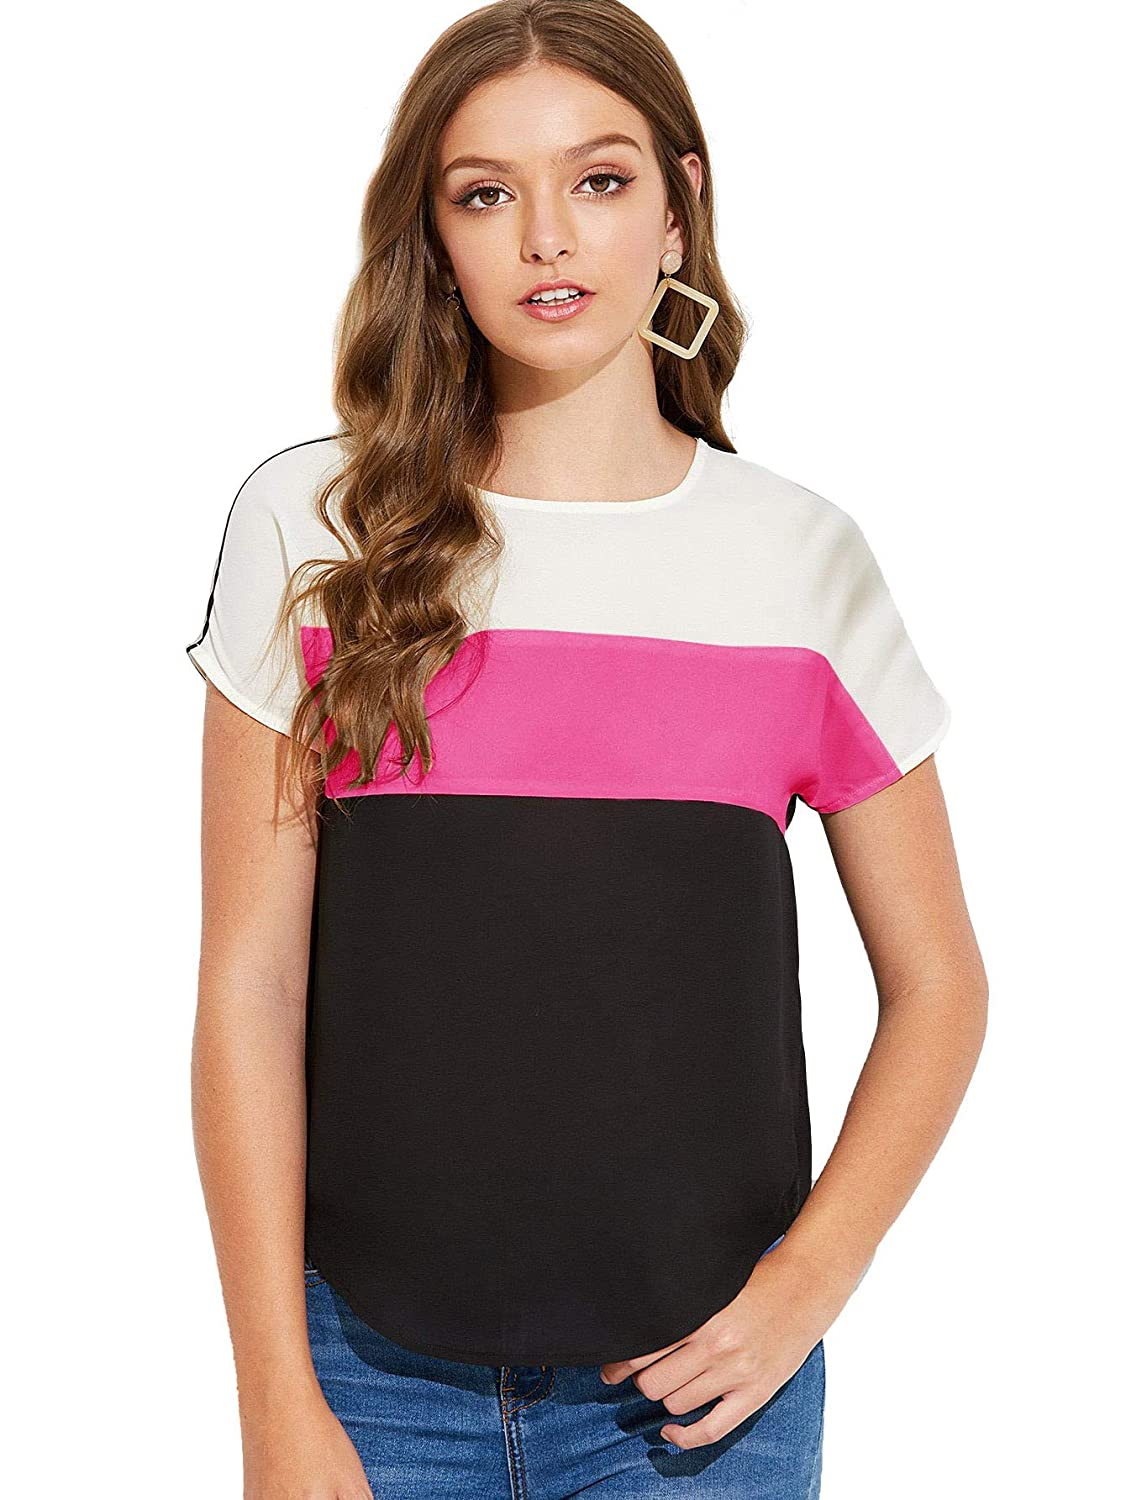 Multi1 Floerns Women's Casual Short Sleeve color Block Striped TShirt Blouse